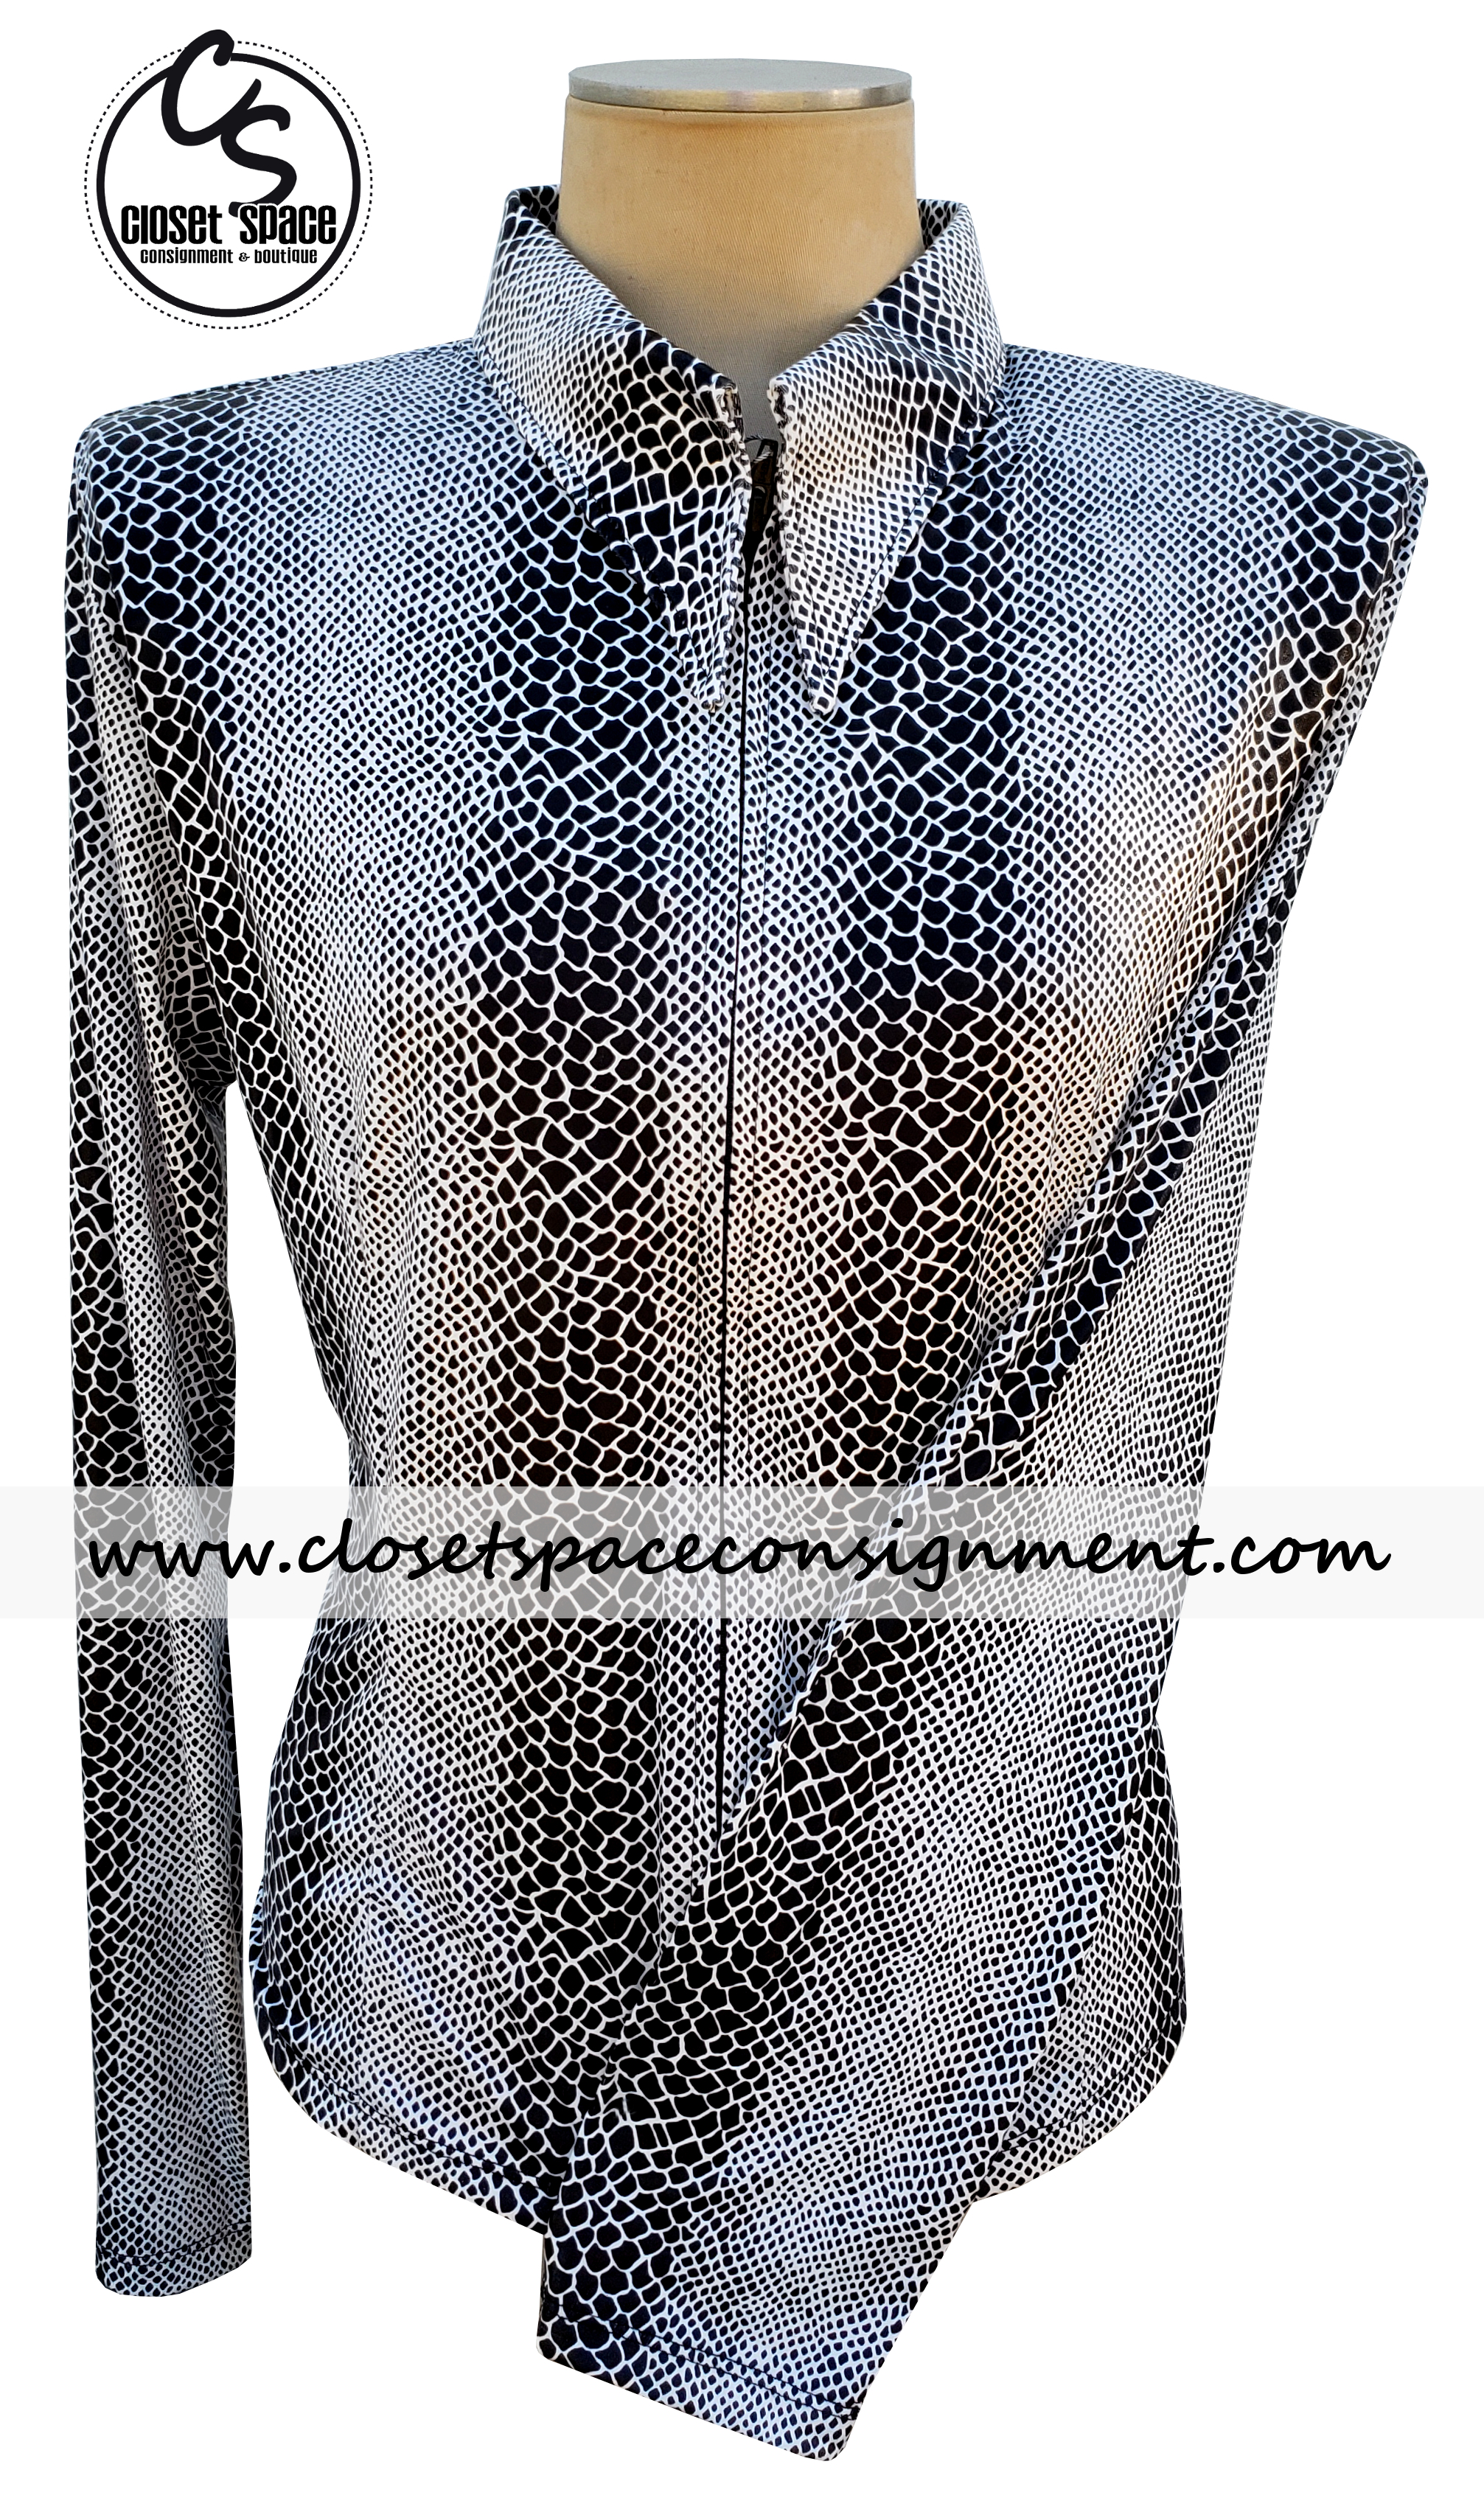 ​'Lisa Nelle' Black & White Snakeskin Shirt - NEW MA1